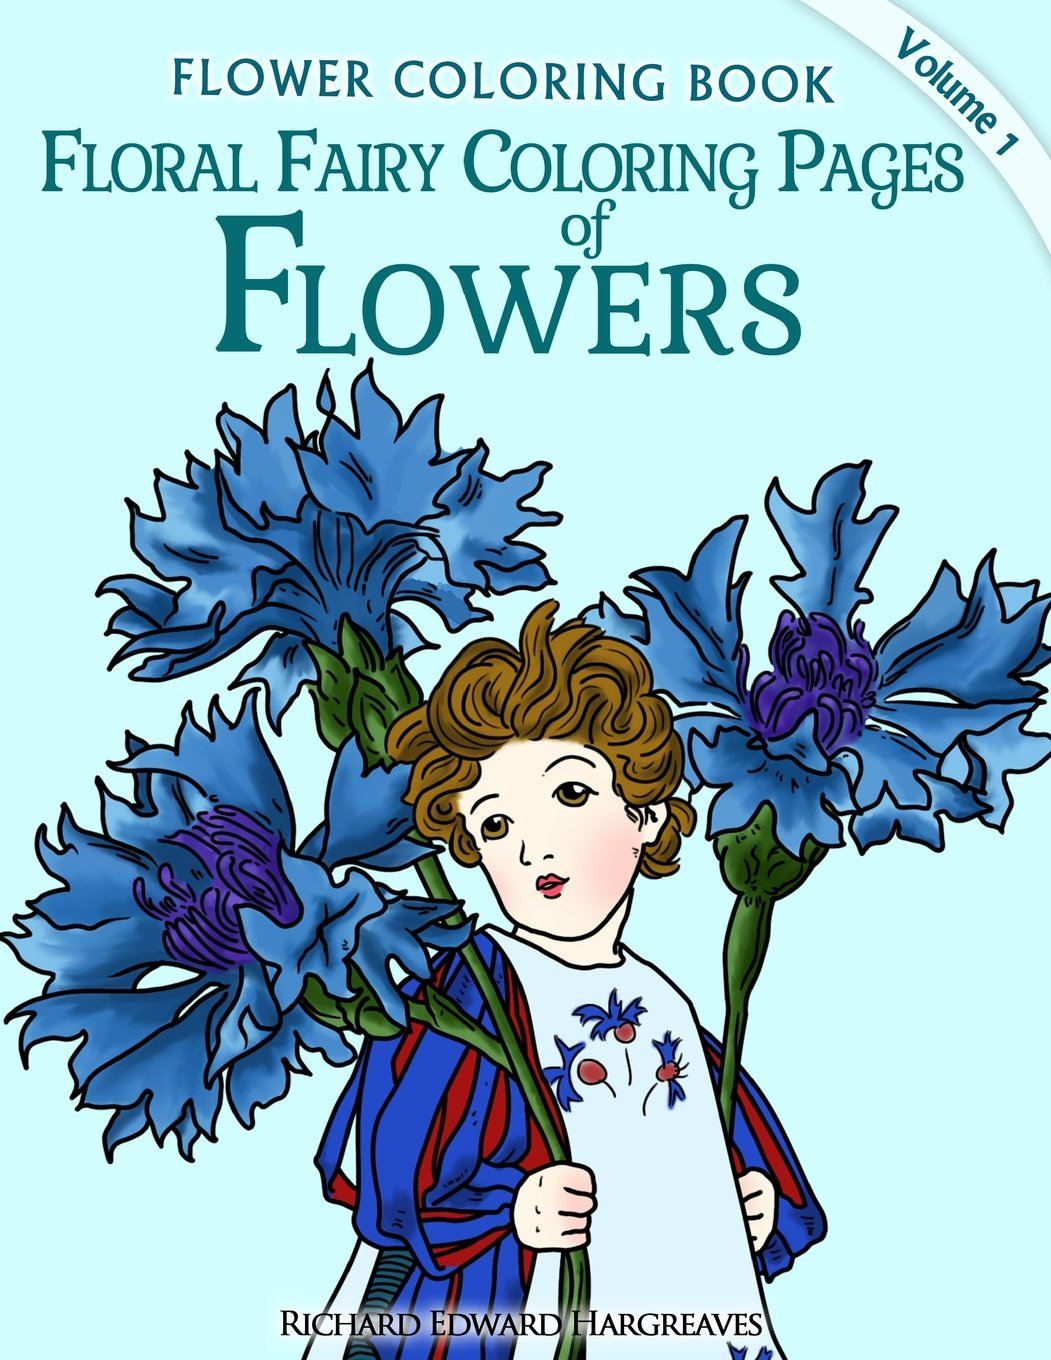 Floral Fairy Coloring Pages of Flowers - Flower Coloring Pages (Flower Coloring Book) (Volume 1)